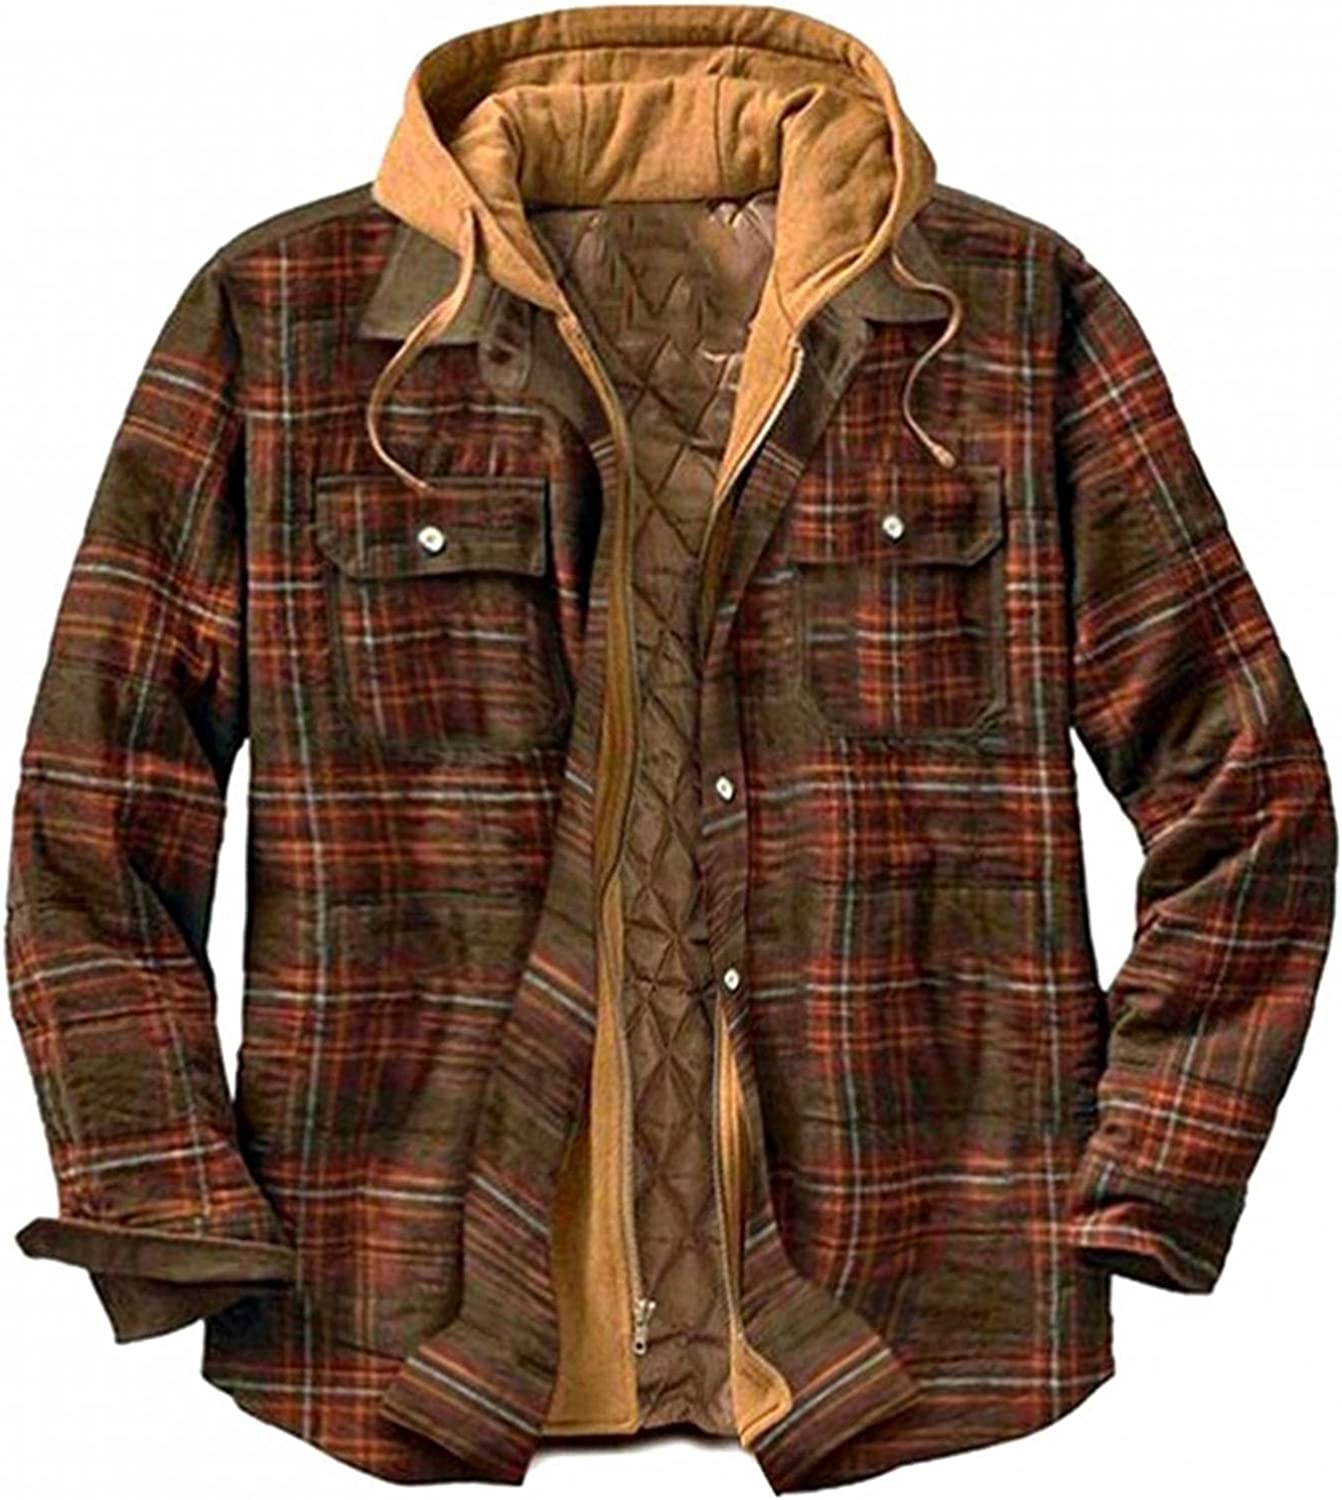 FUNEY Jackets for Men Fashion Casual Lightweight Long Sleeve Quilted Lined Hoodie Flannel Plaid Shirt Jacket with Hood